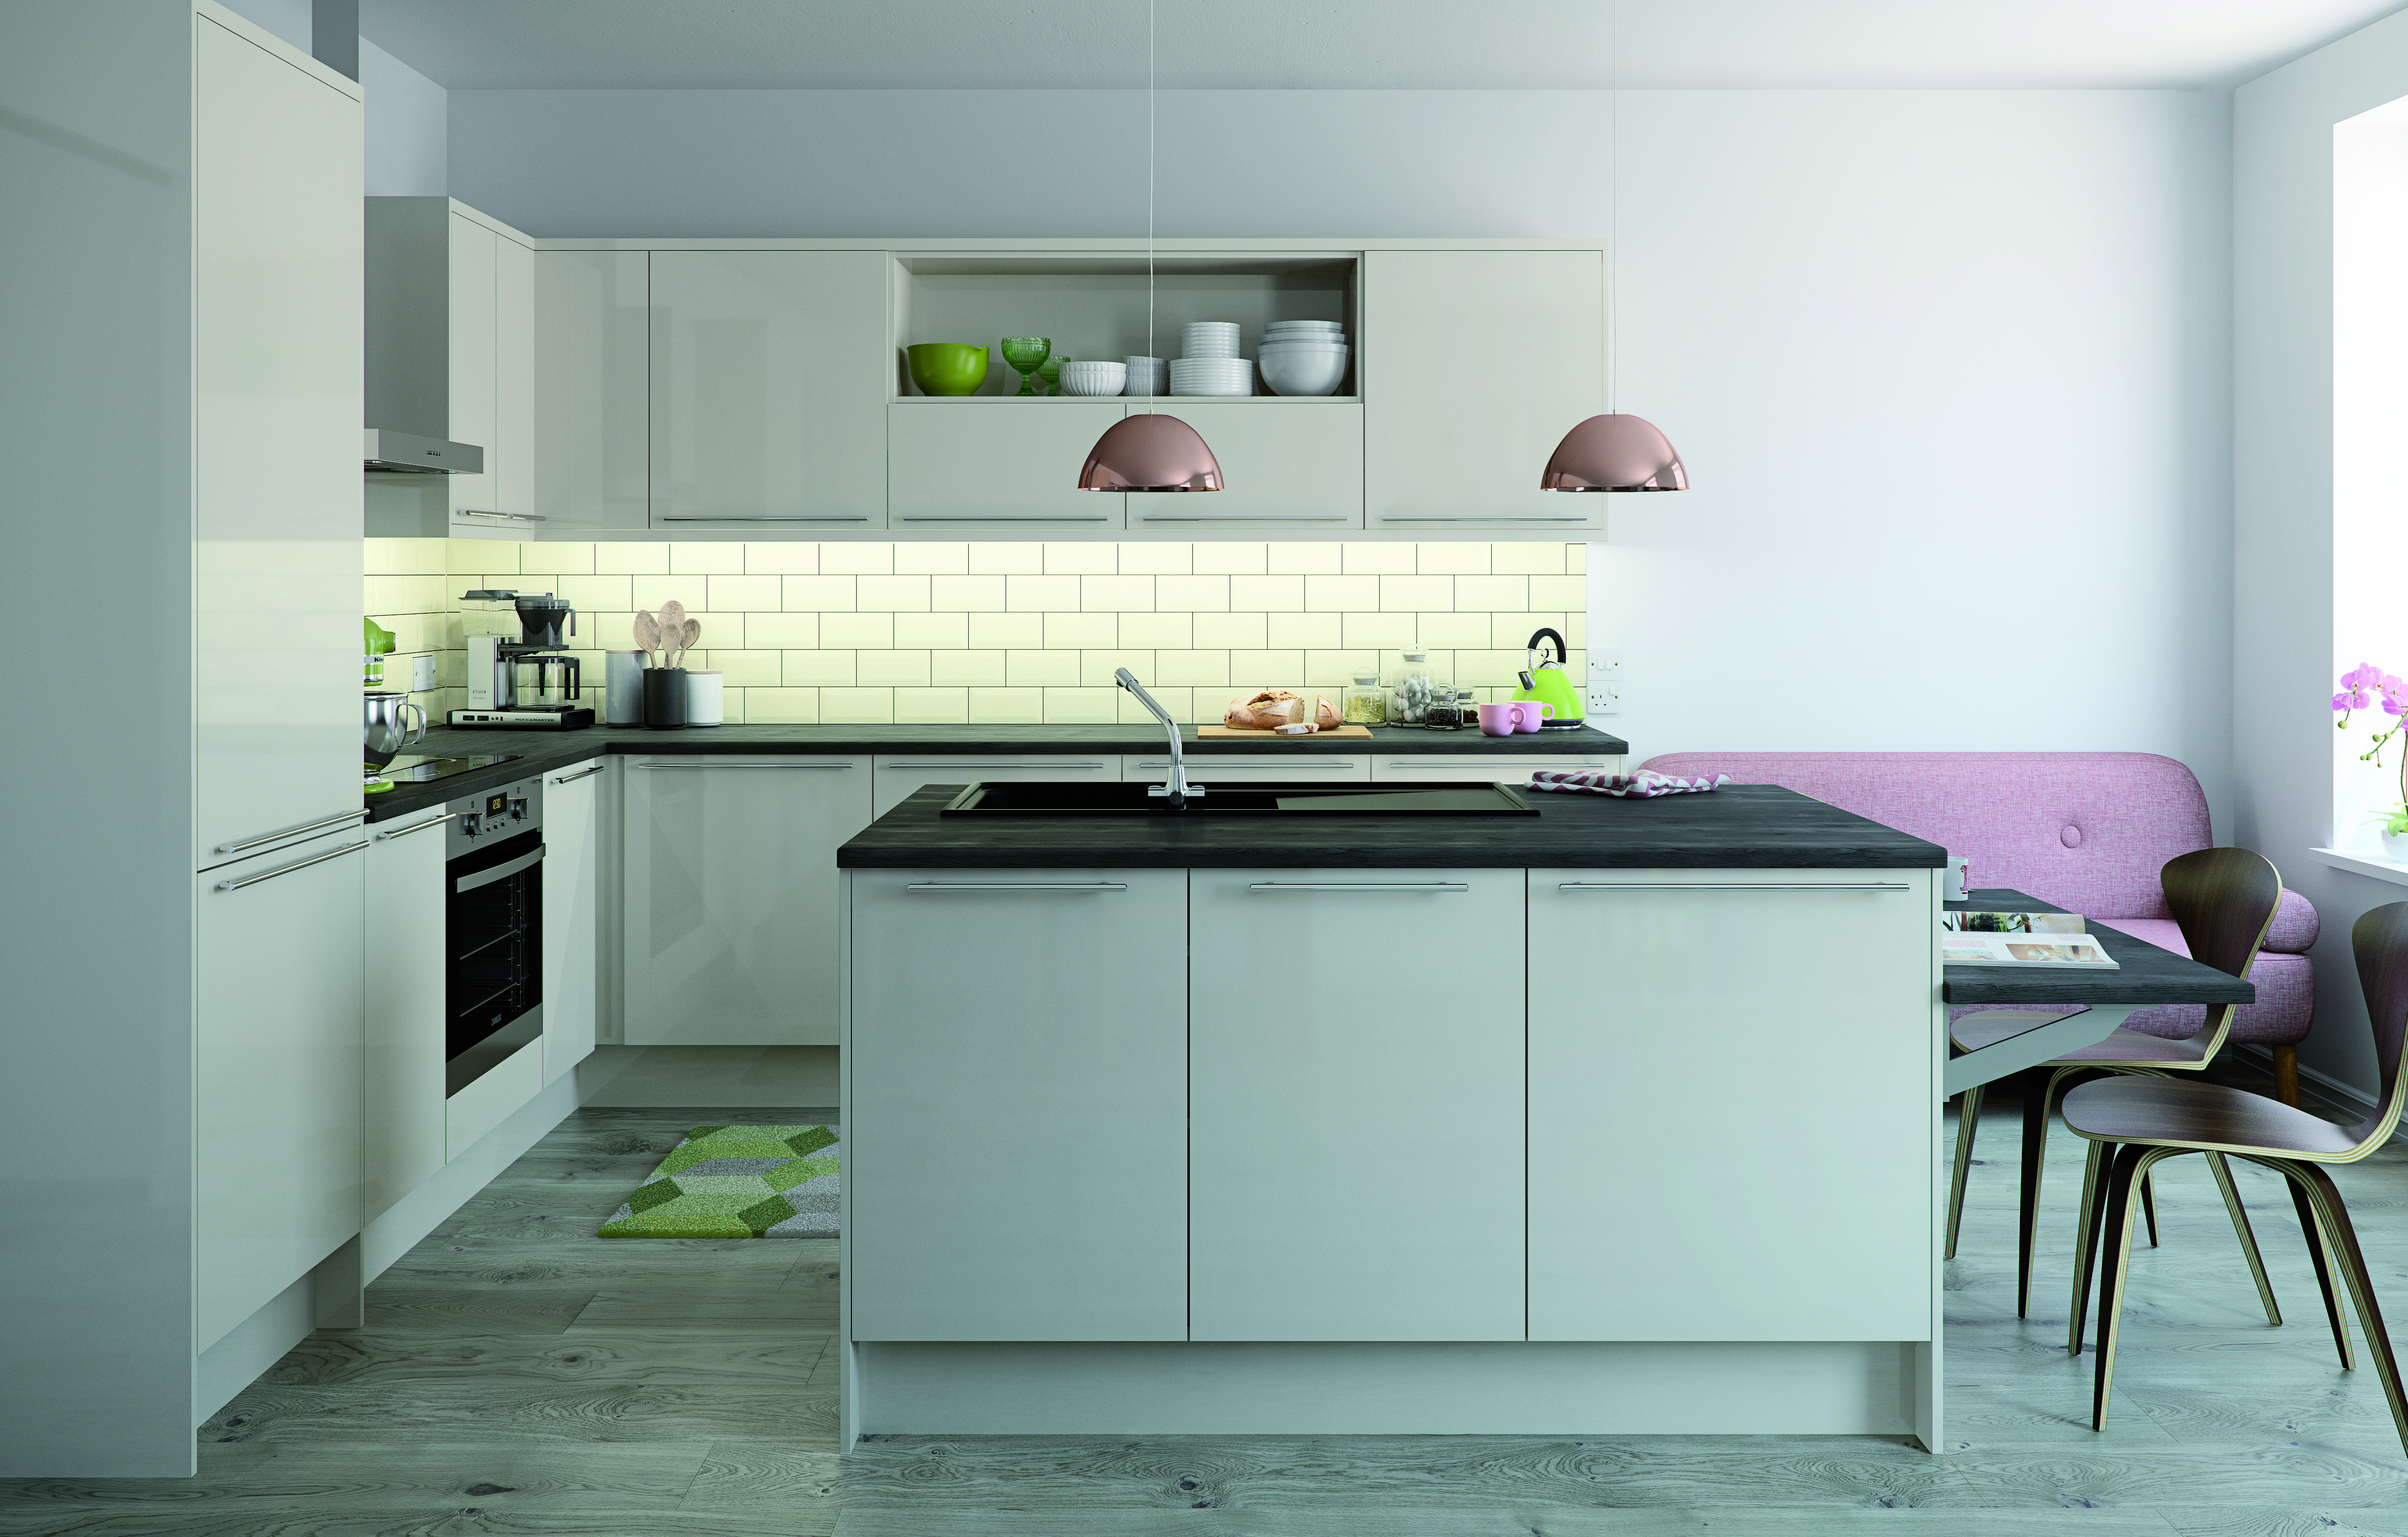 Magnet Winter Sale Stunning Kitchen Designs For Half Price